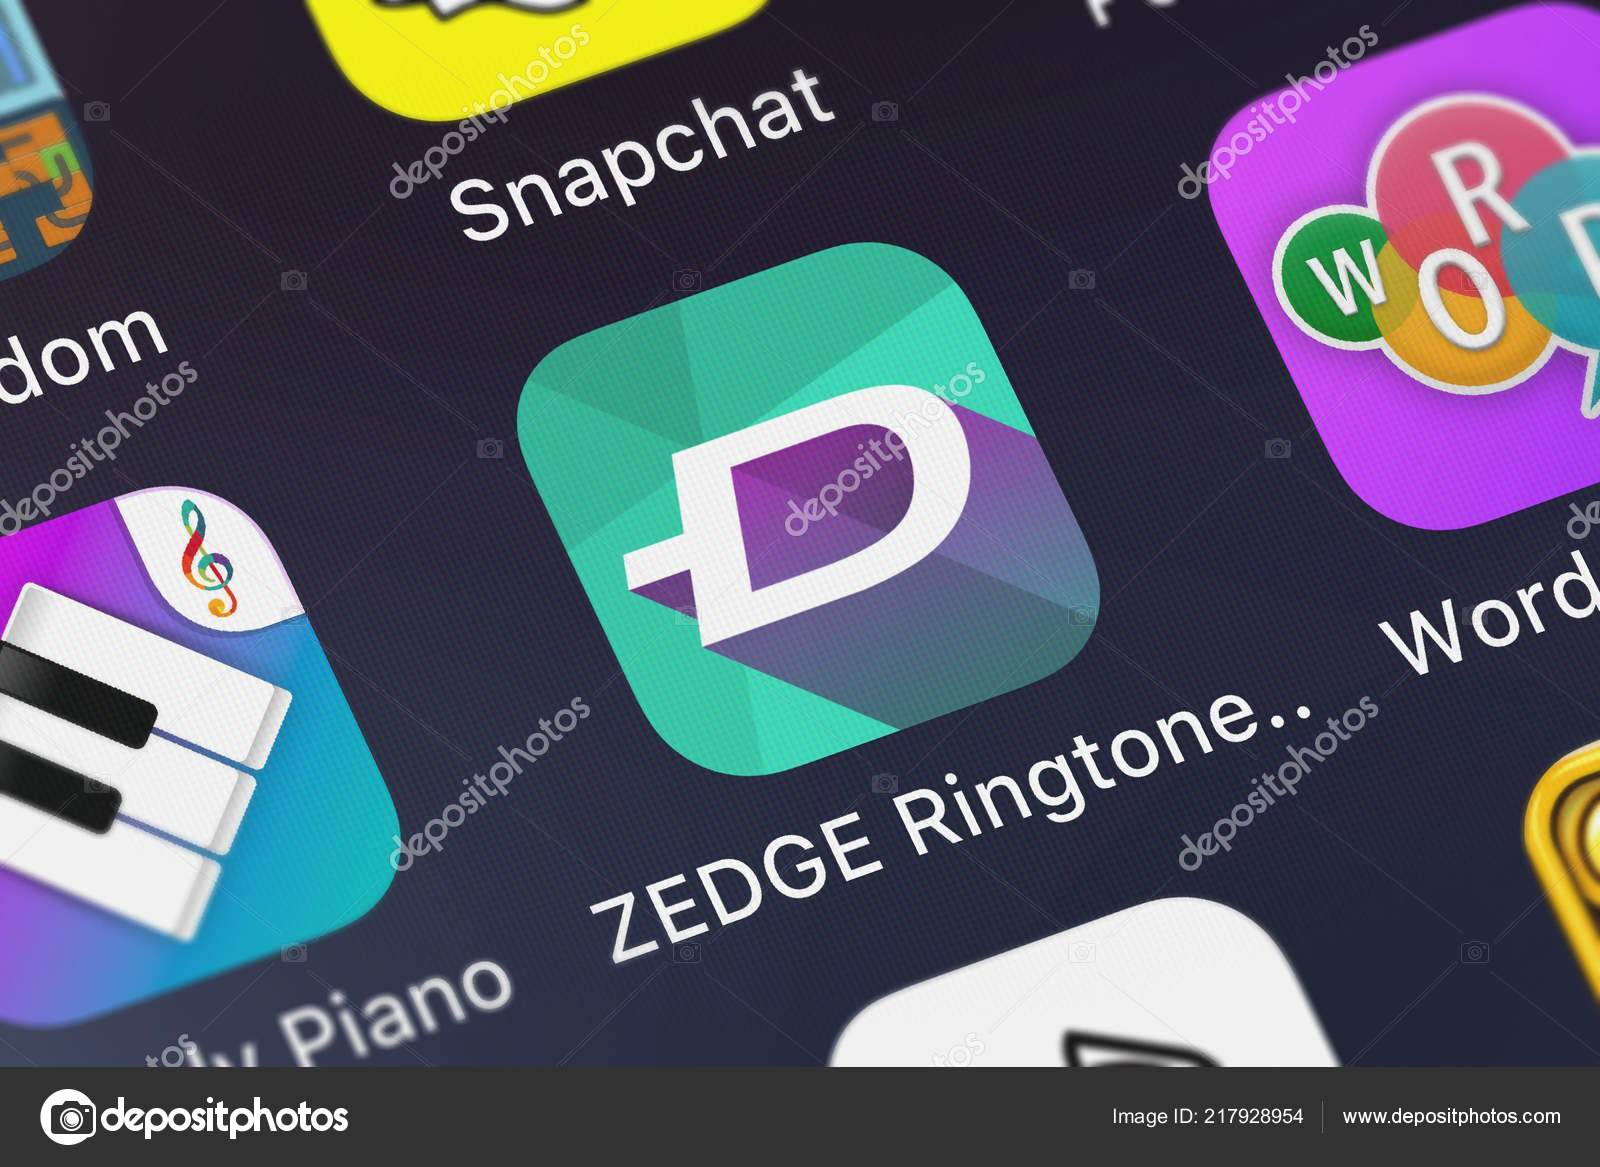 zedge free app for iphone